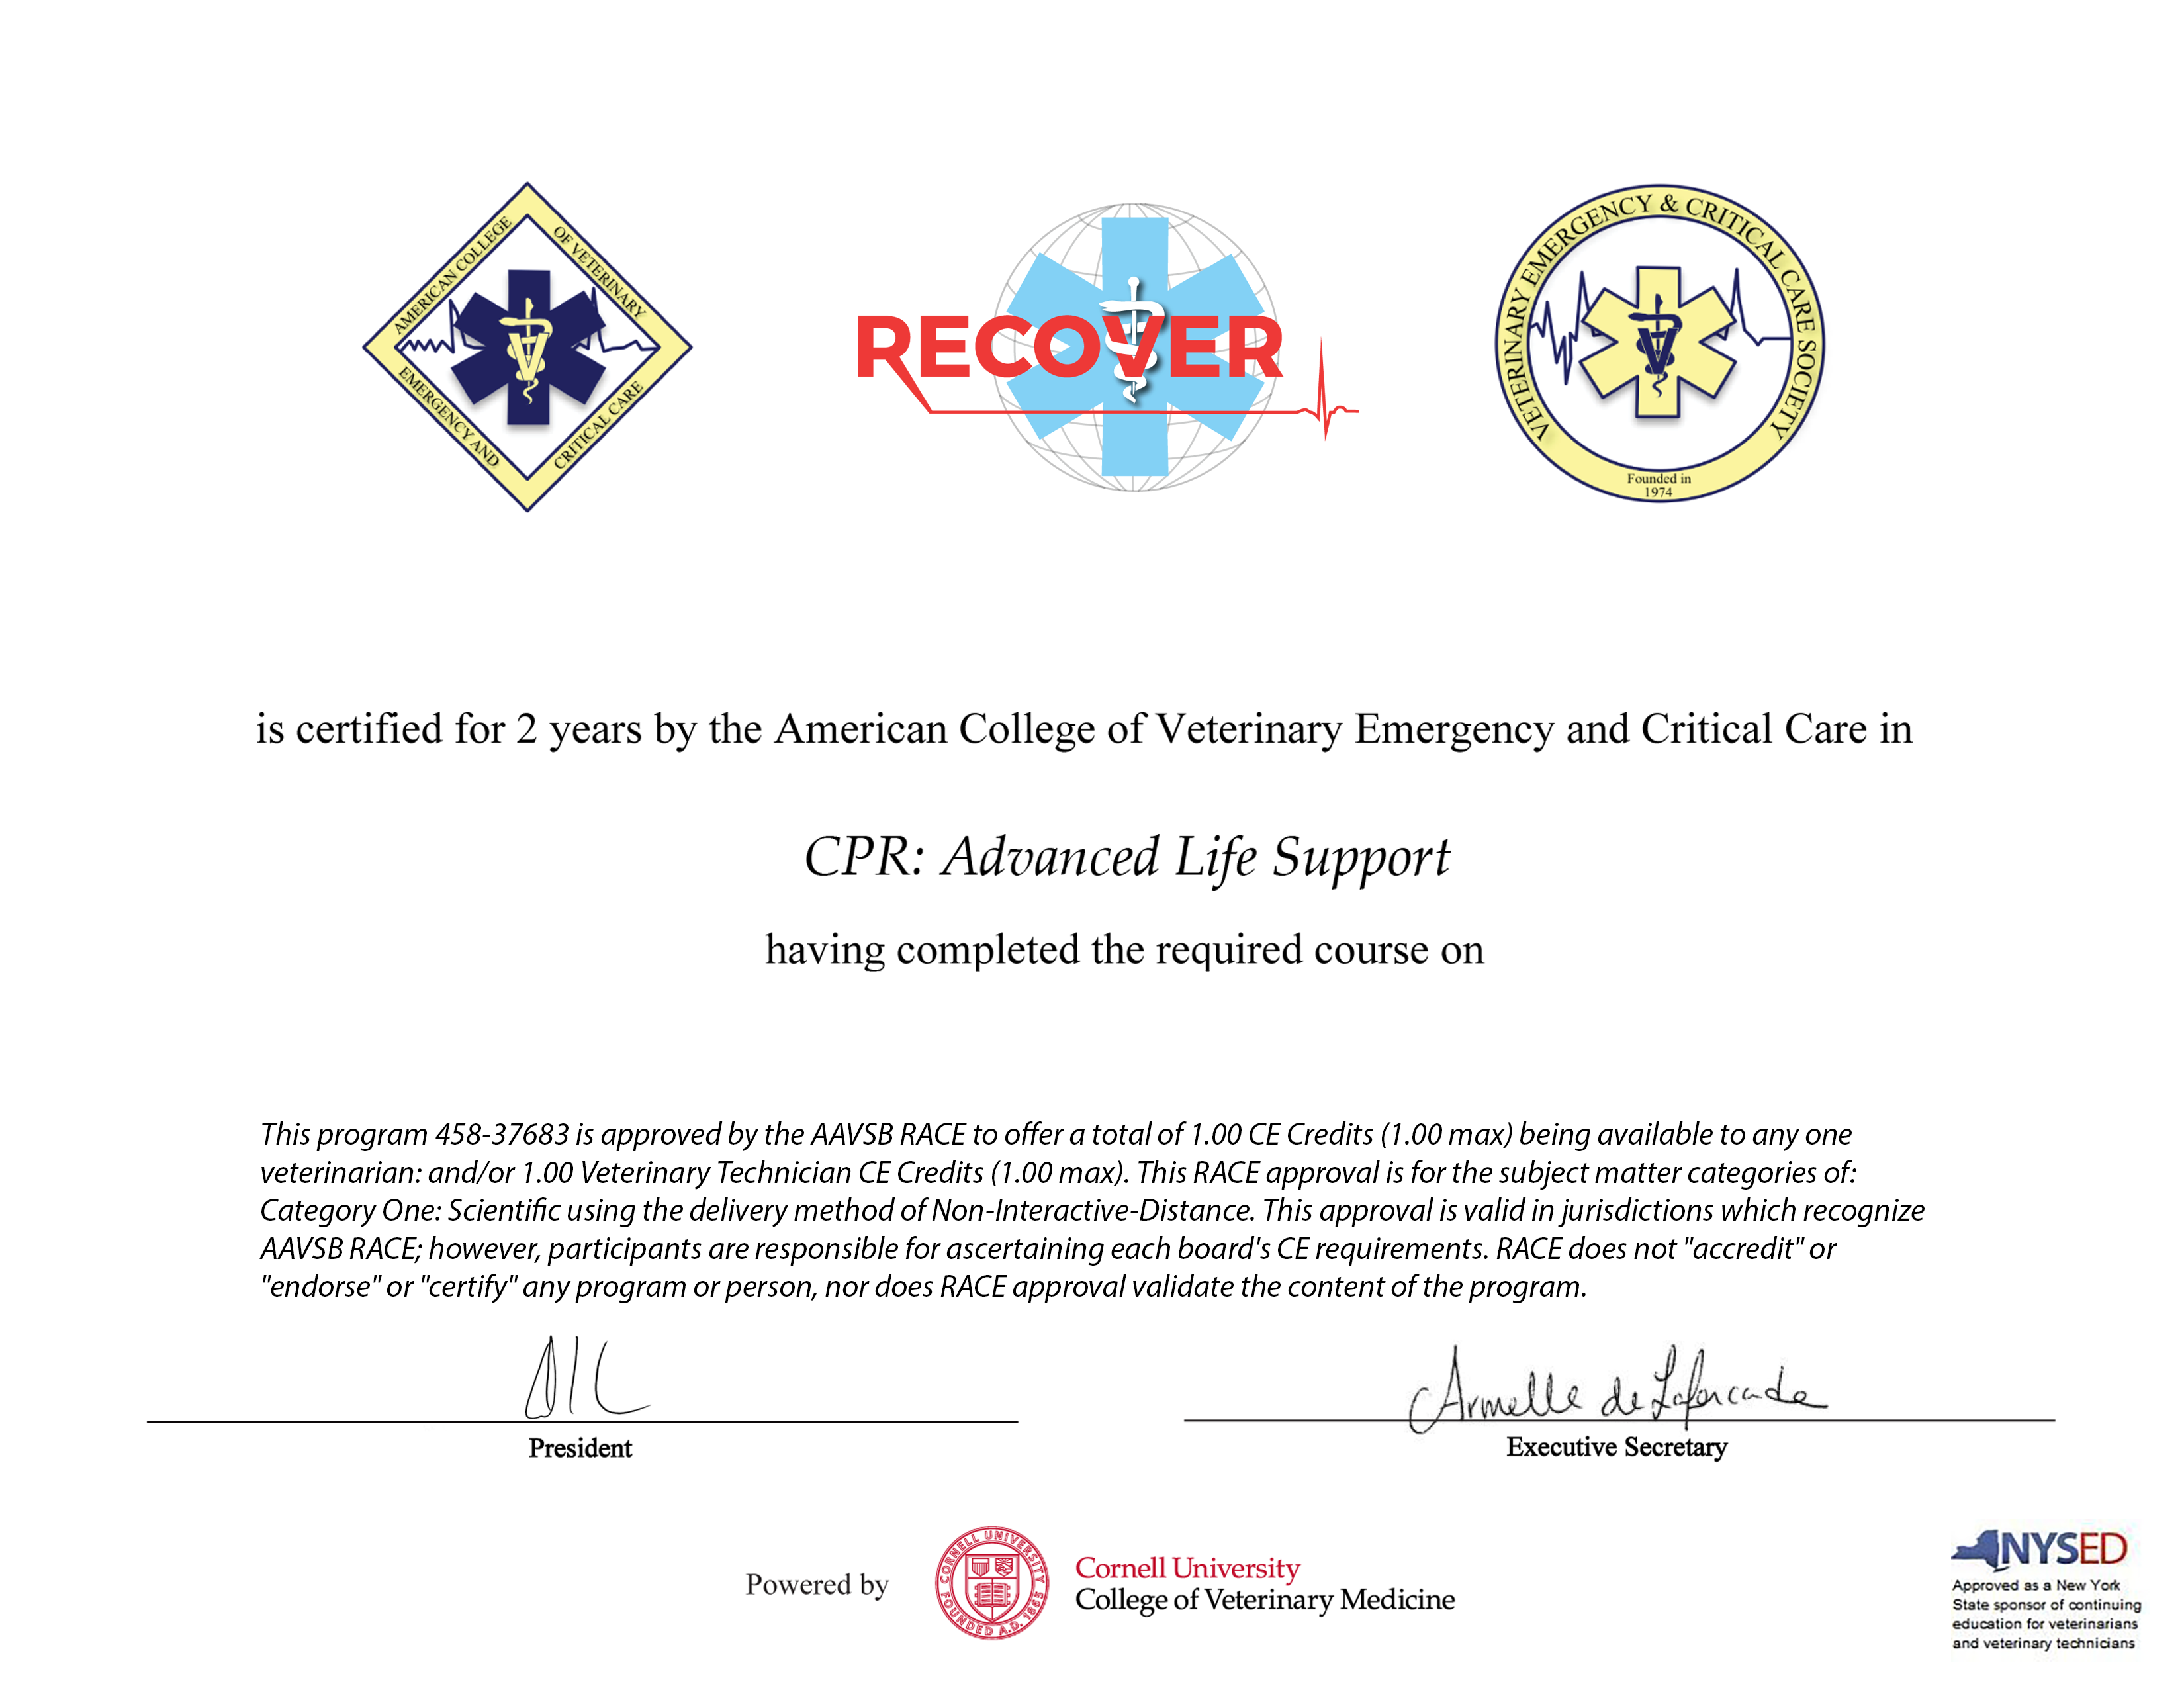 CPR: Advanced Life Support Recertification